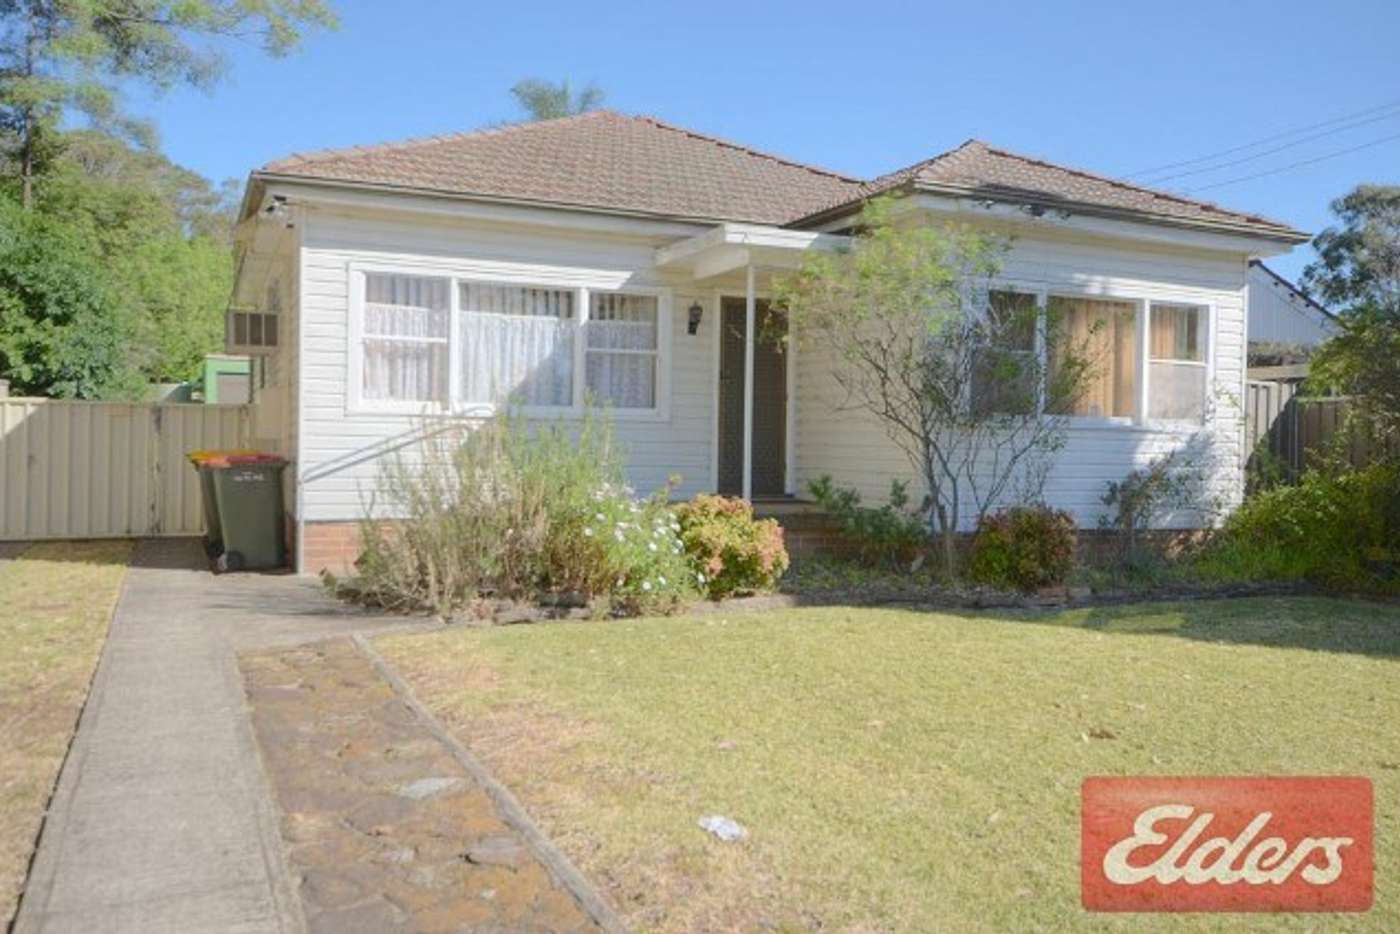 Main view of Homely house listing, 24 Toongabbie Road, Toongabbie NSW 2146